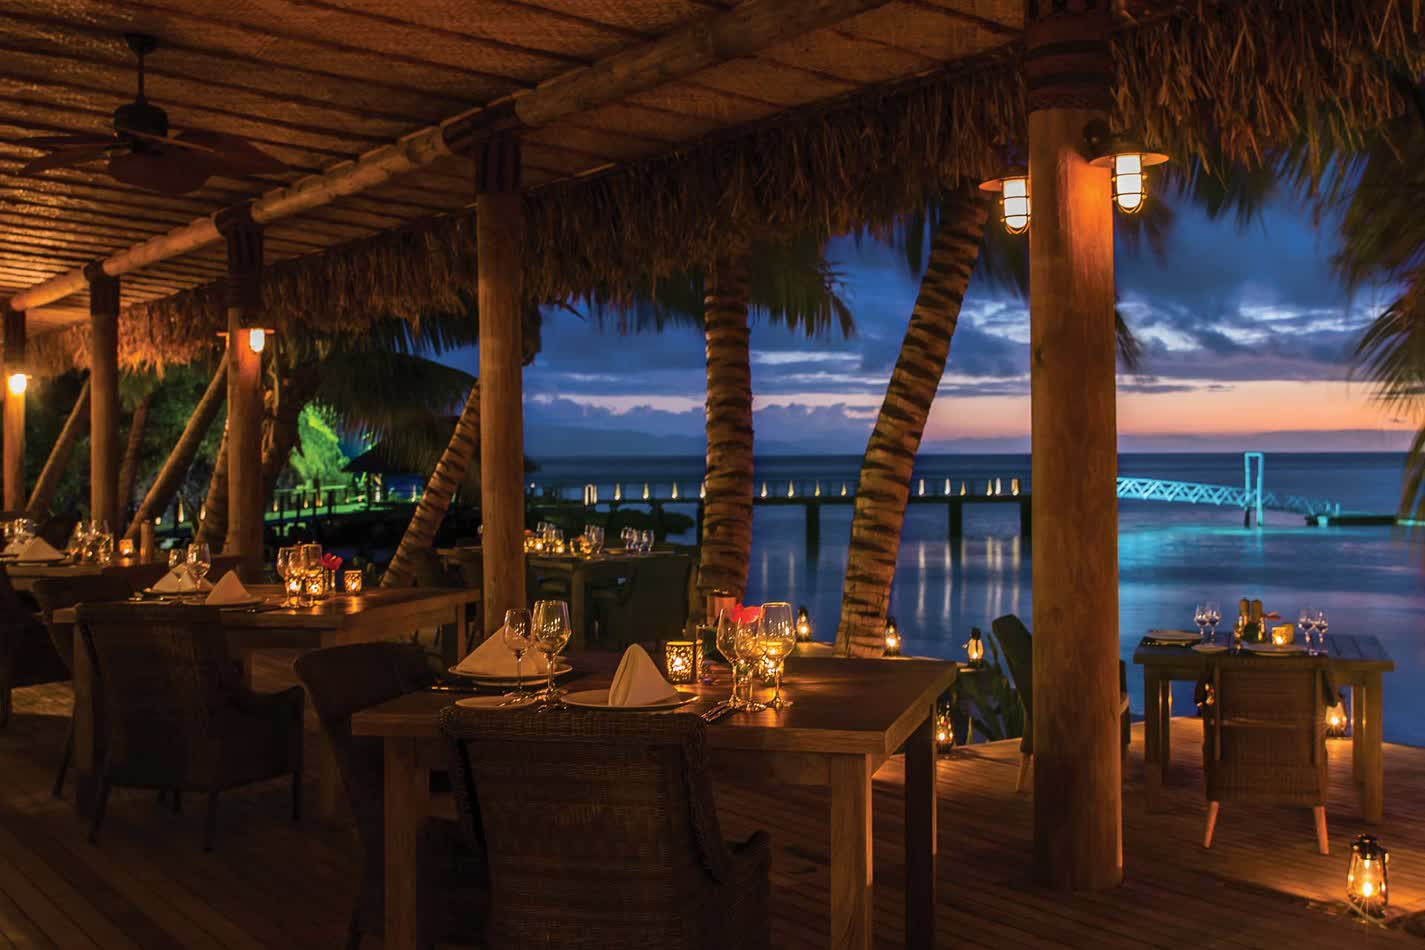 Kokomo Island Resort in Fiji. Image courtesy of the Kokomo Island Fiji Website.